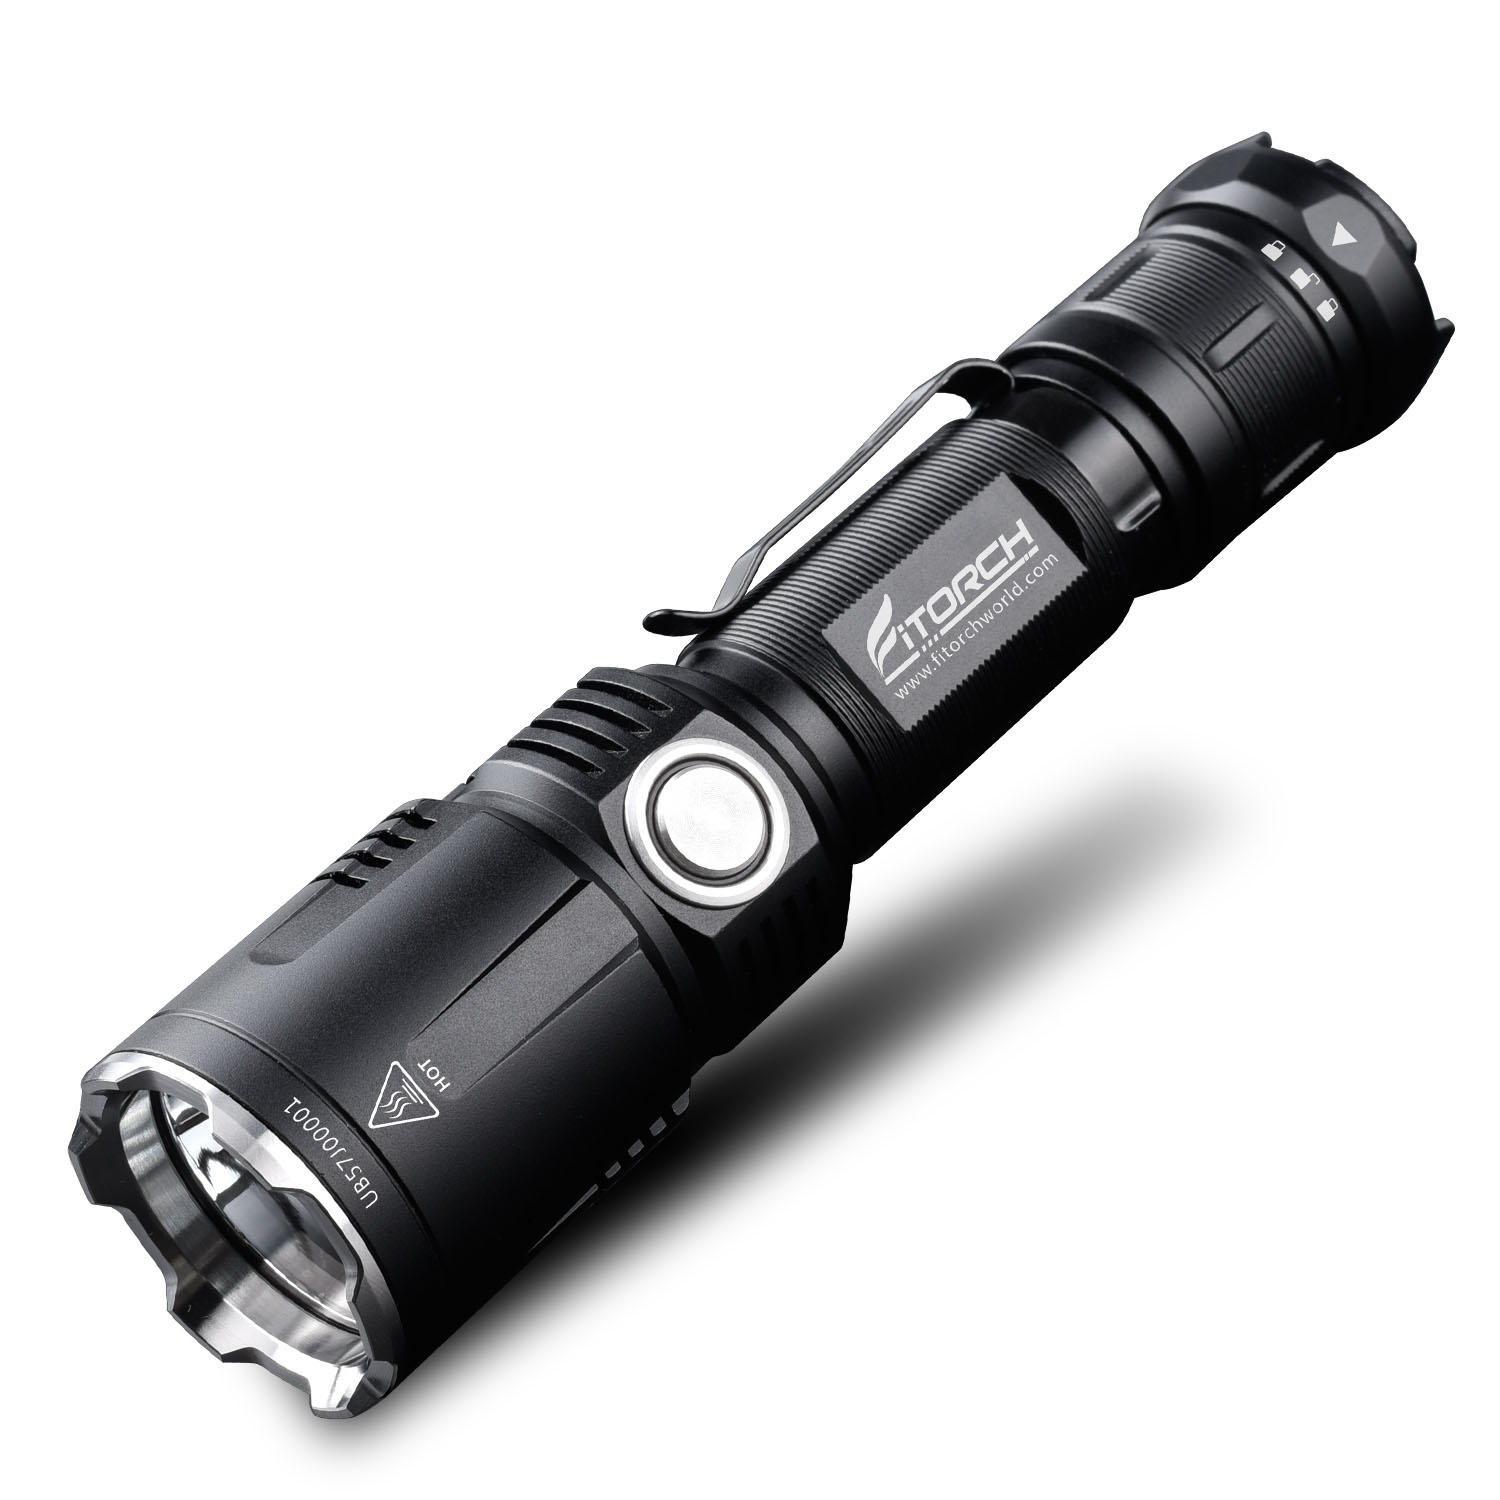 Fitorch M30R XHP35 HD 1800LM 6Modes Dimming USB Tactical LED Flashlight & Mobile Power Bank